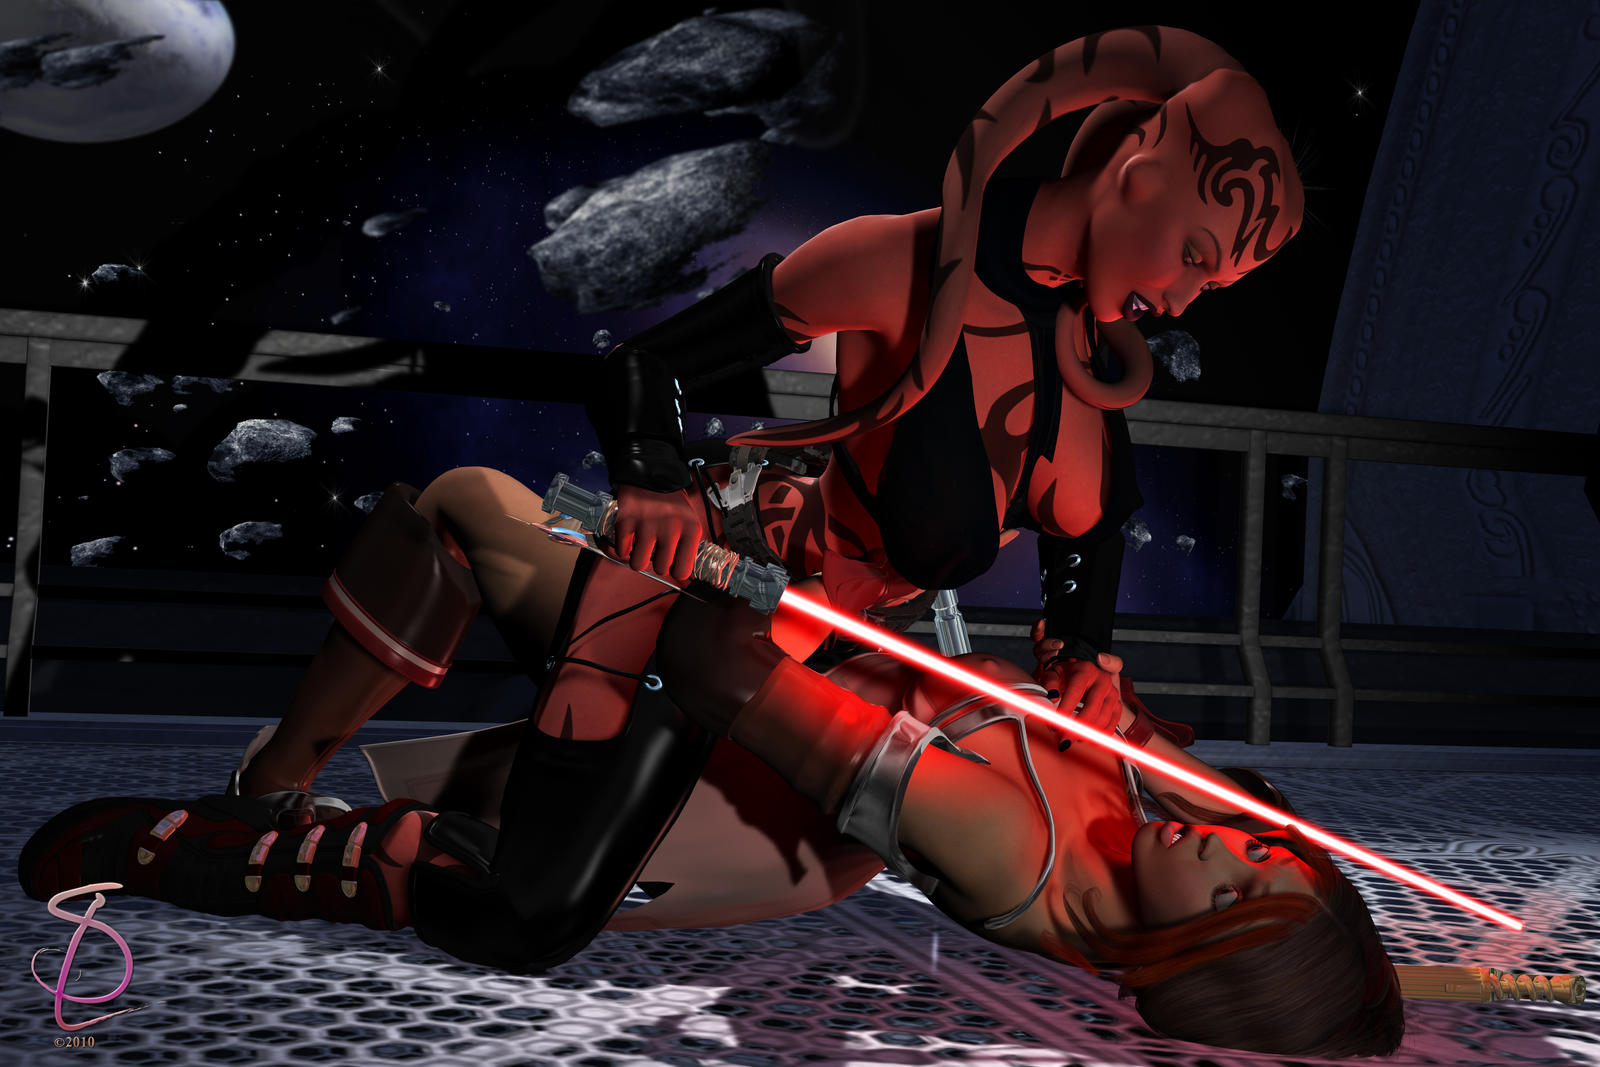 Sith and porno anime pics naked movies